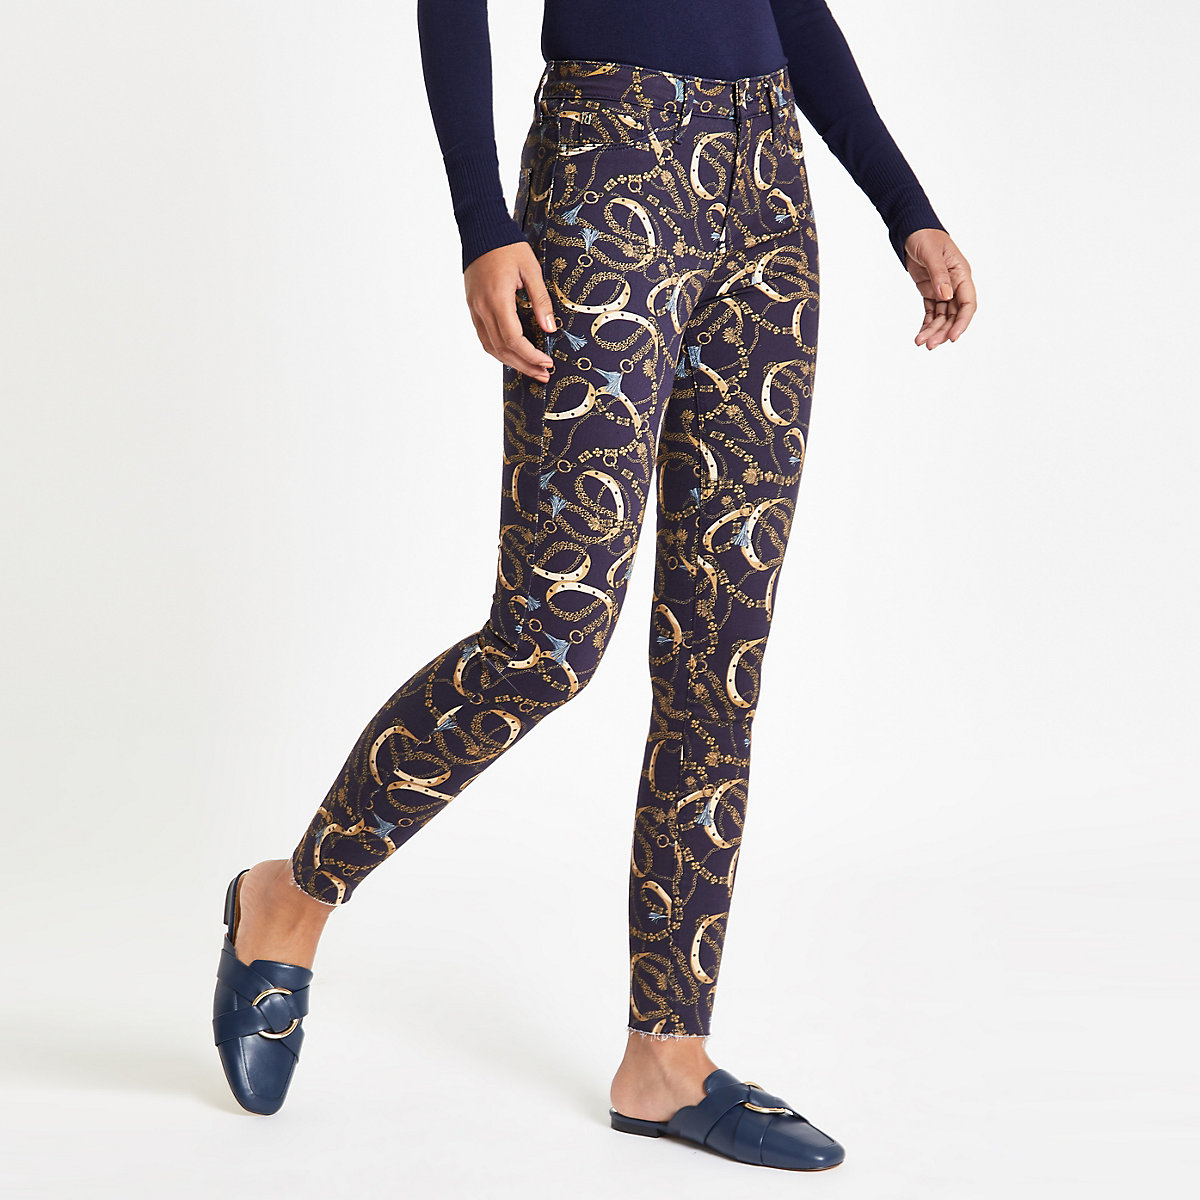 Navy Molly chain print jeggings